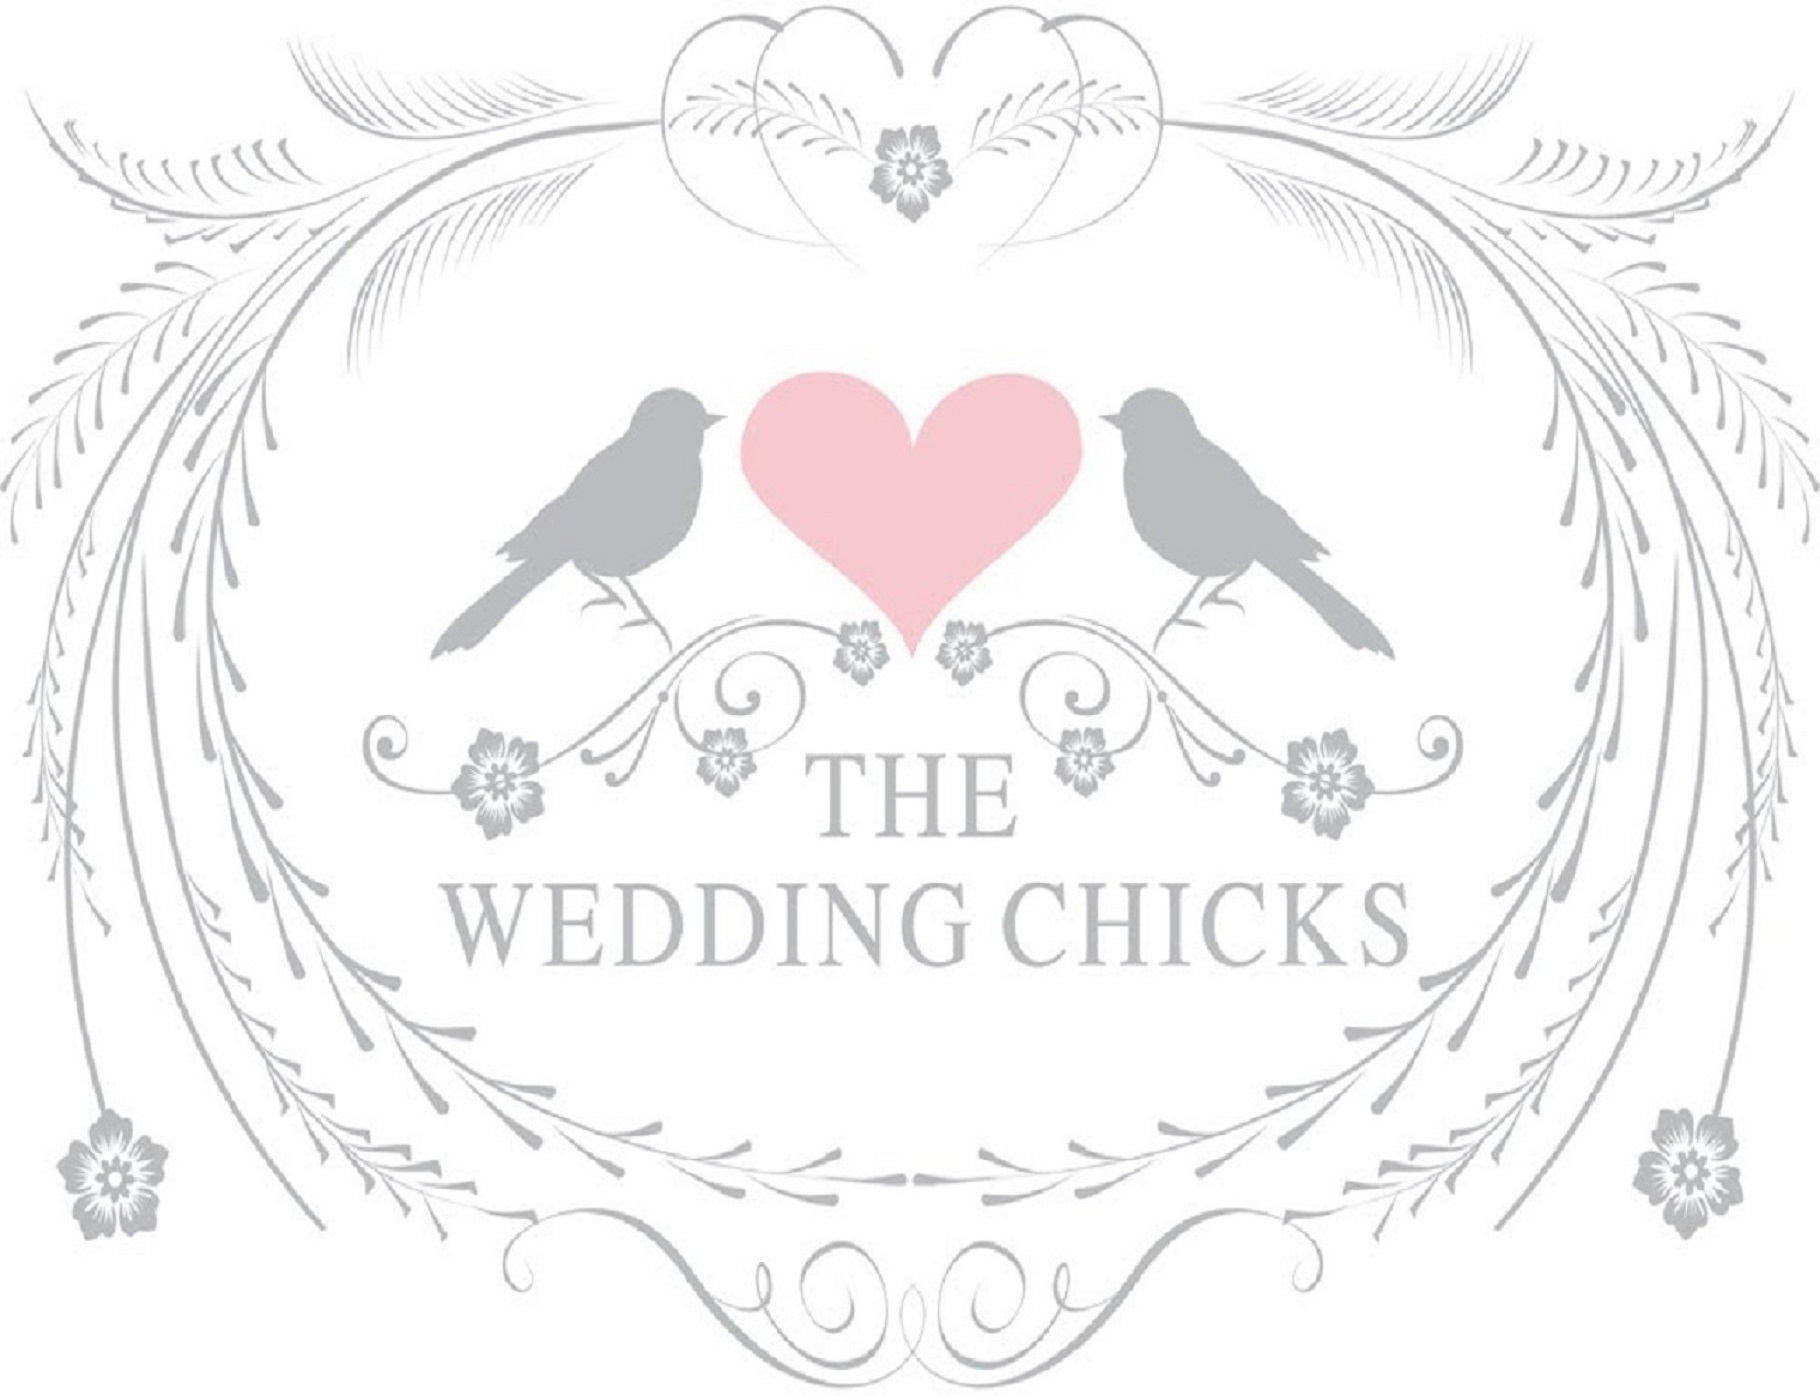 The Wedding Chicks